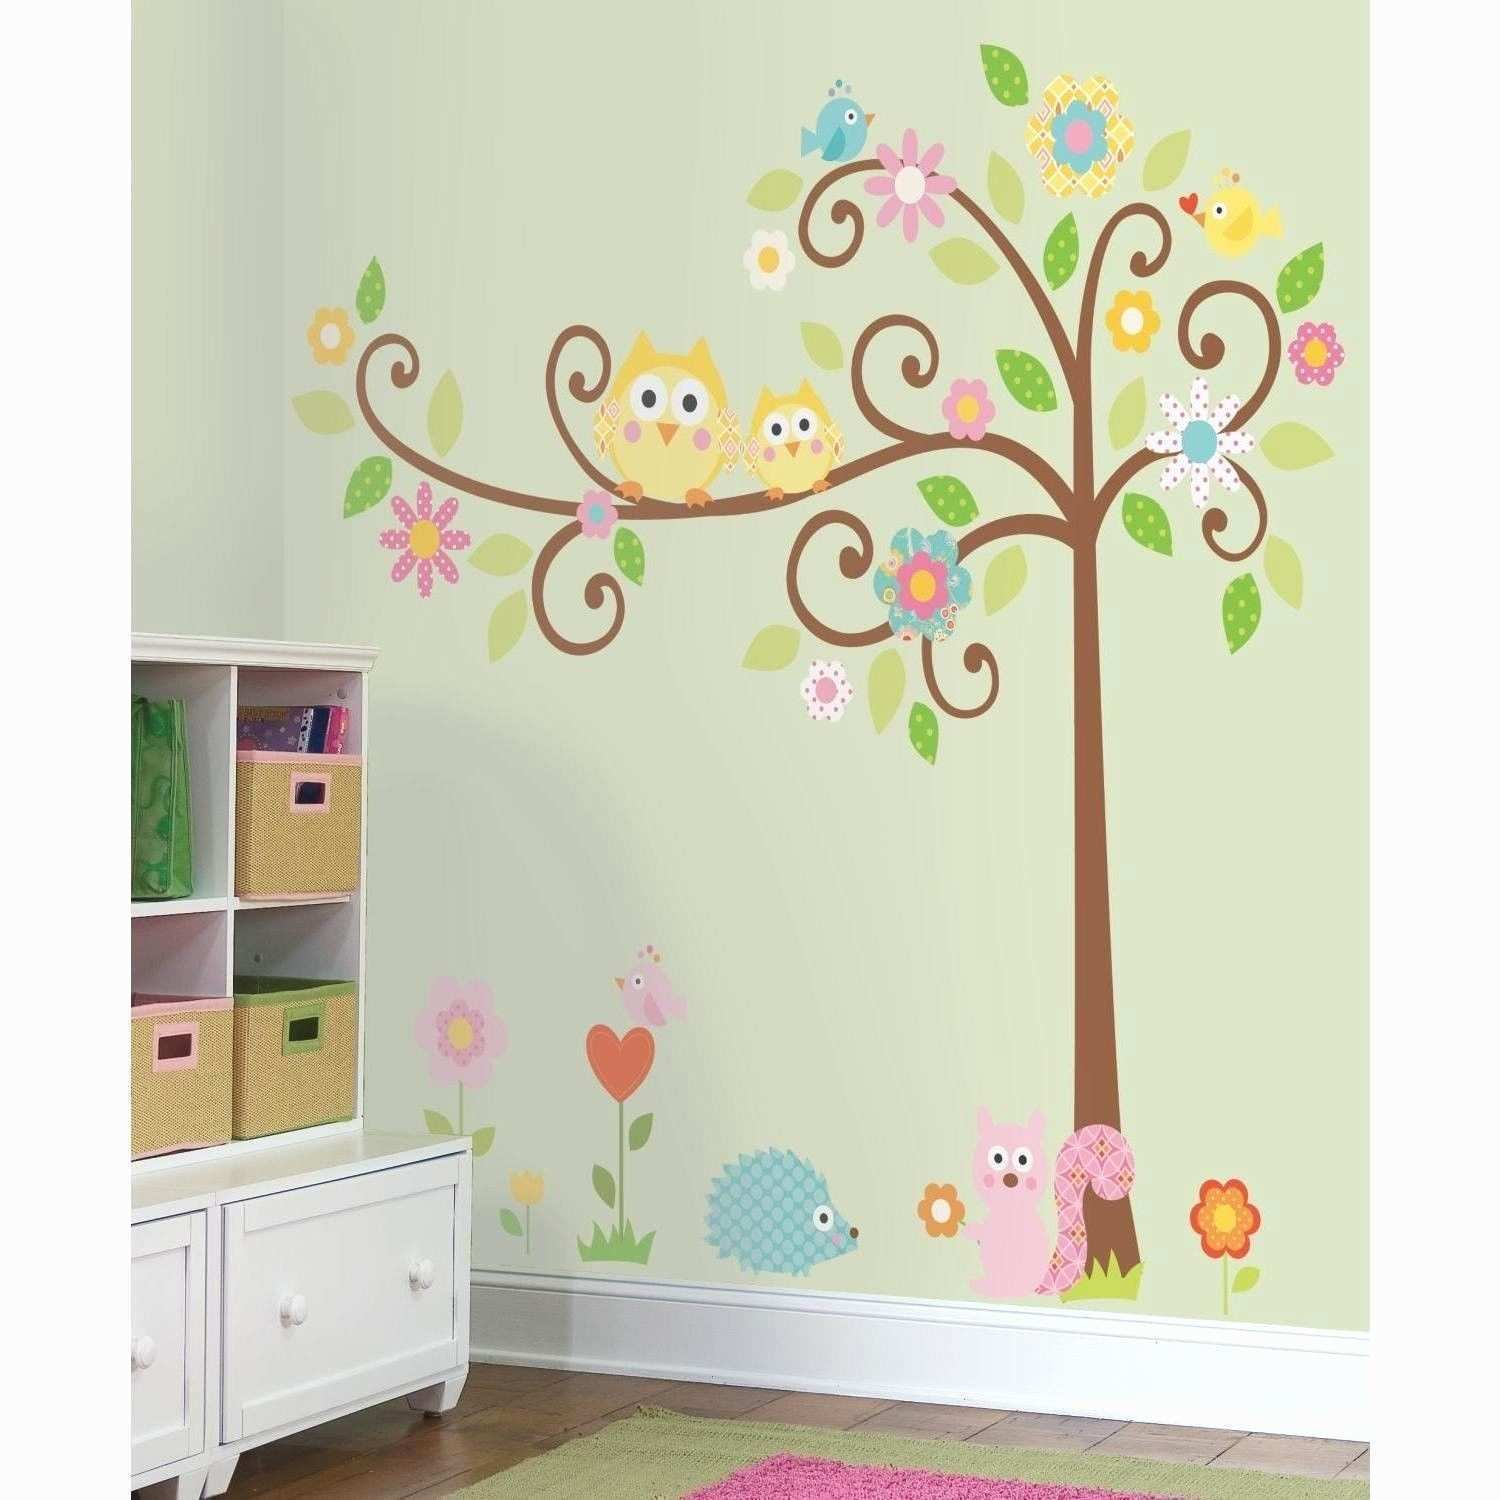 Where to Buy Baby Room Decor Elegant Ideas for Baby Boy Rooms Lovely